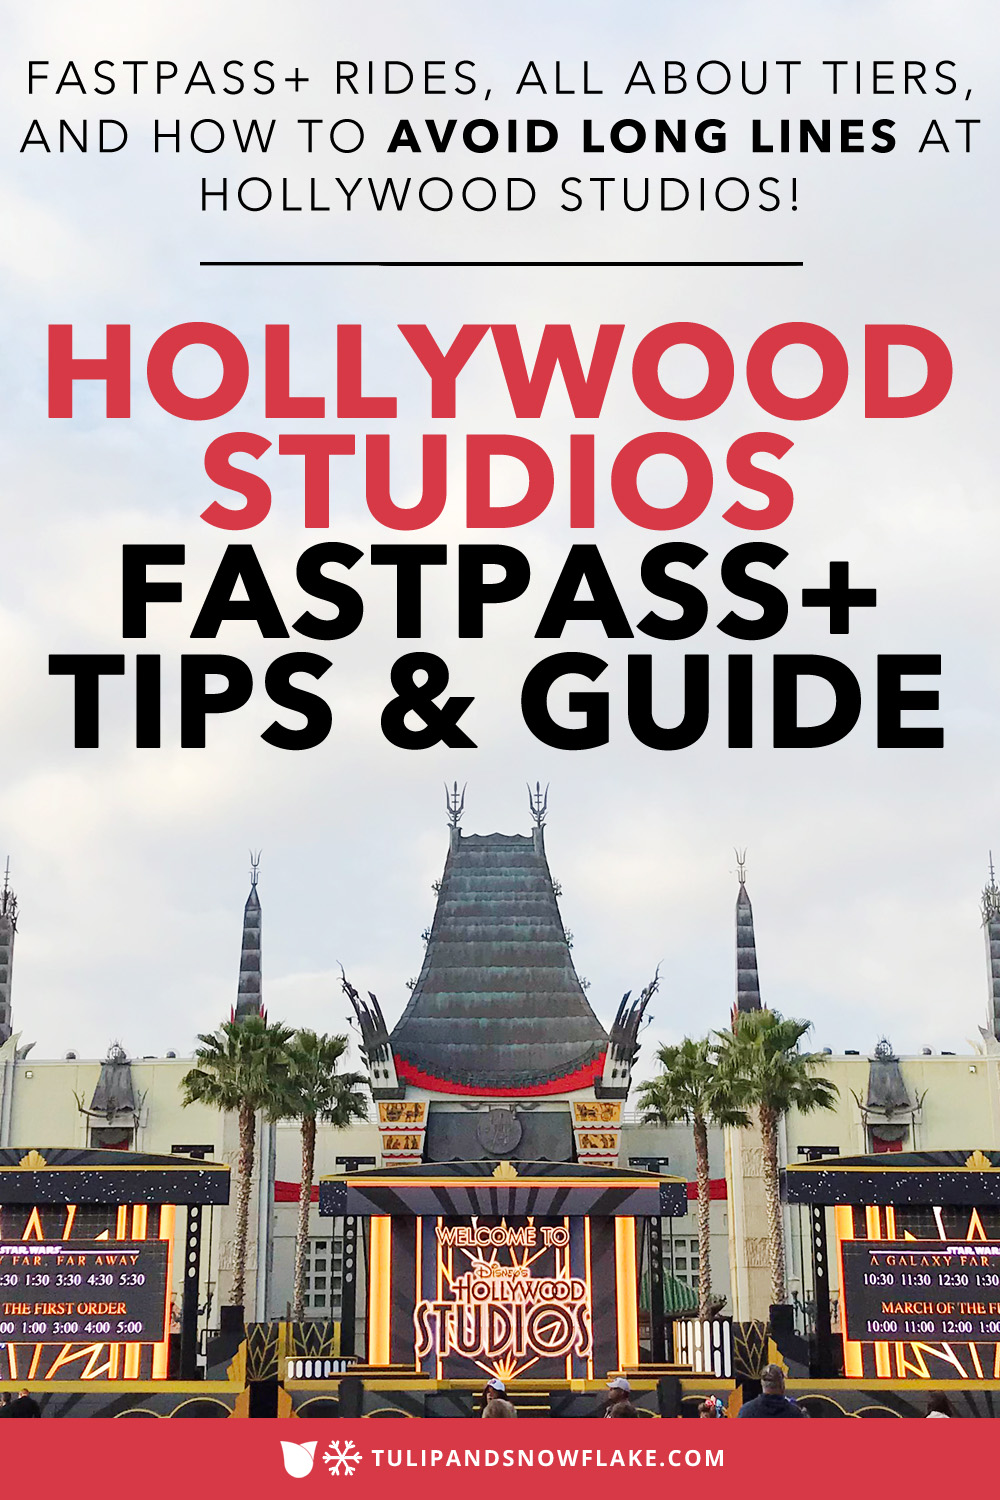 Disney's Hollywood Studios FastPass+ tiers and rides